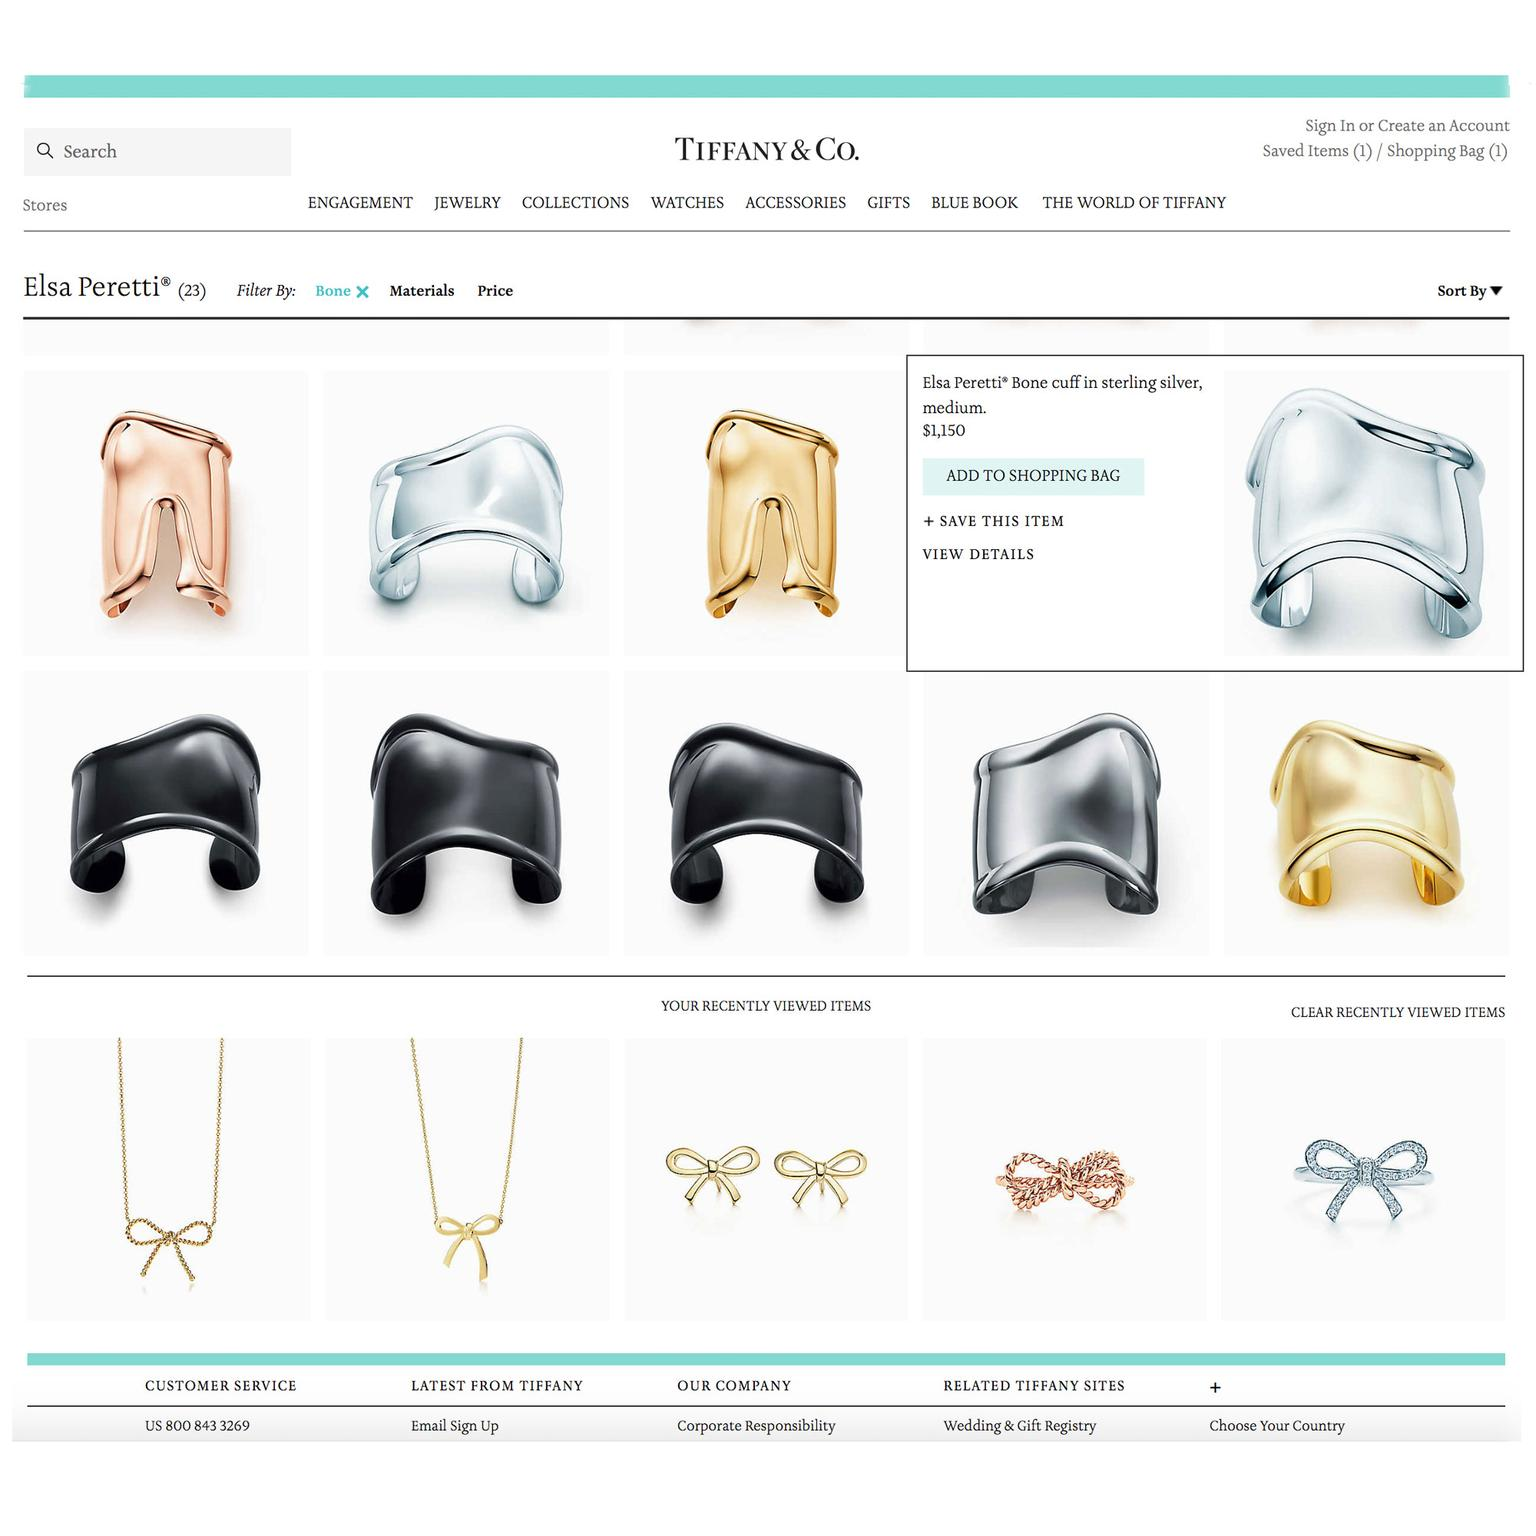 Tiffany e-commerce site